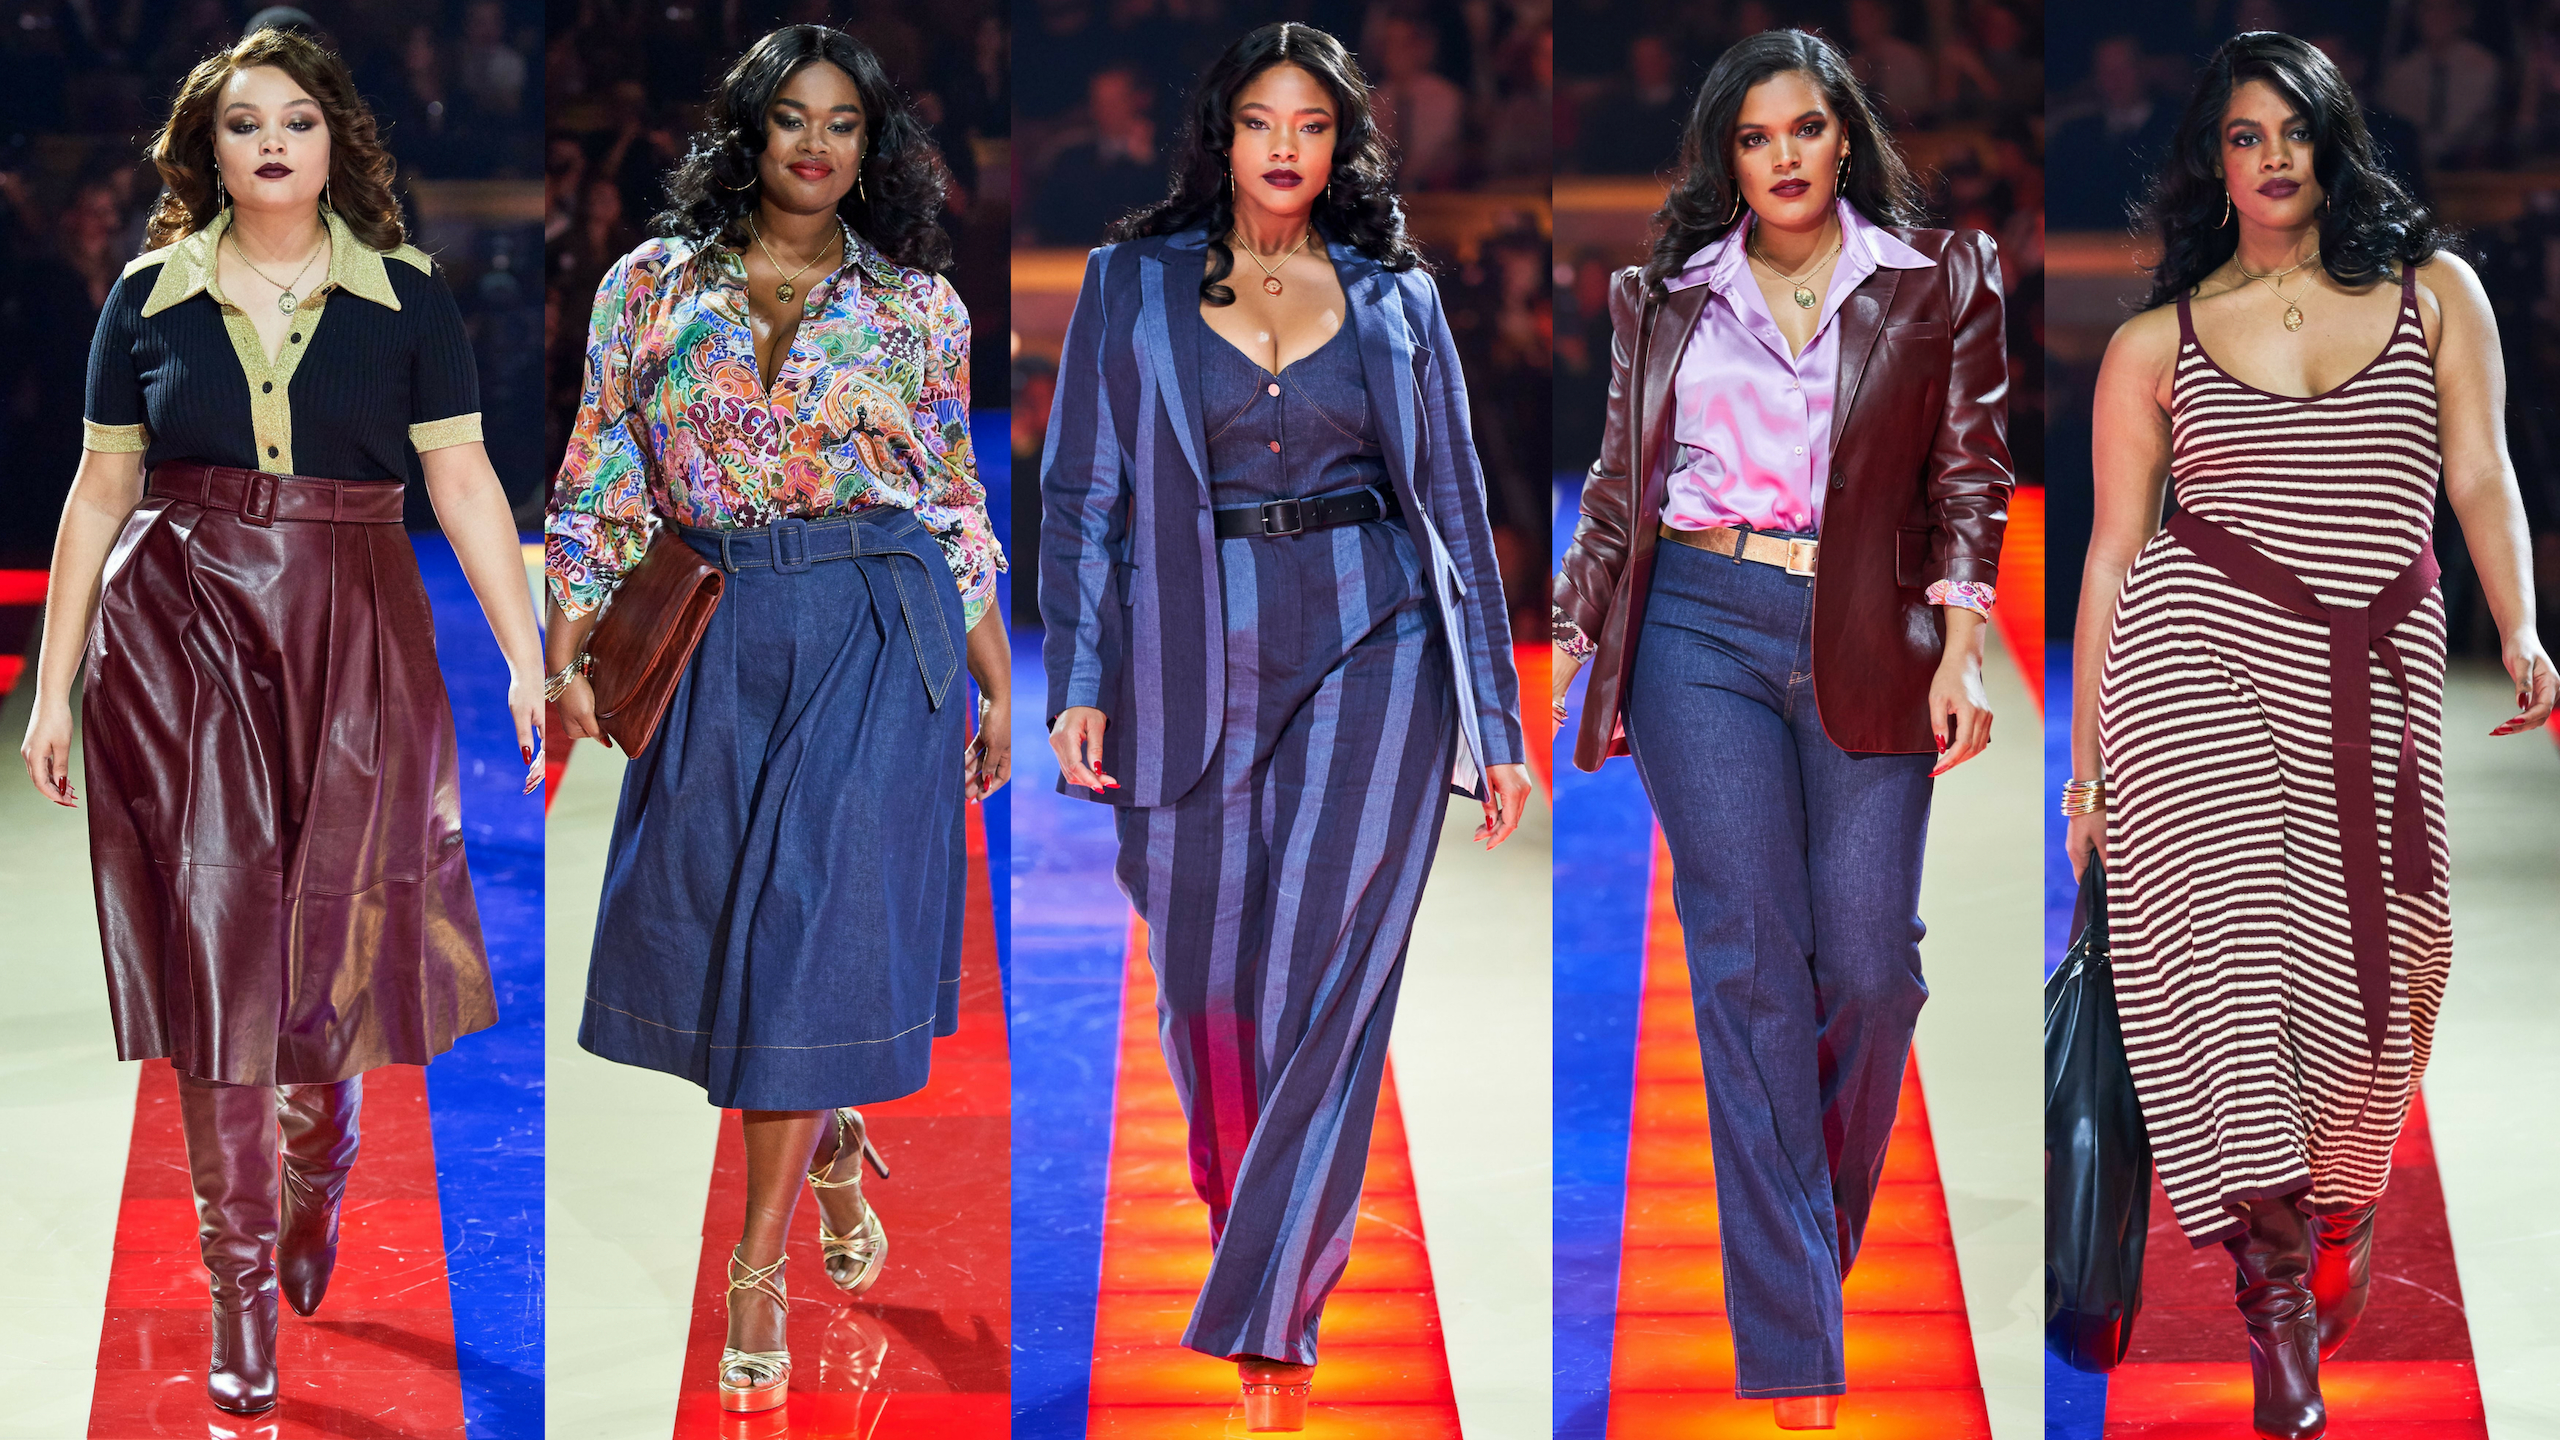 348c4ee2e Plus Size Models Shine At The Tommy Hilfiger x Zendaya Fashion Show In  Paris – Estrella Fashion Report